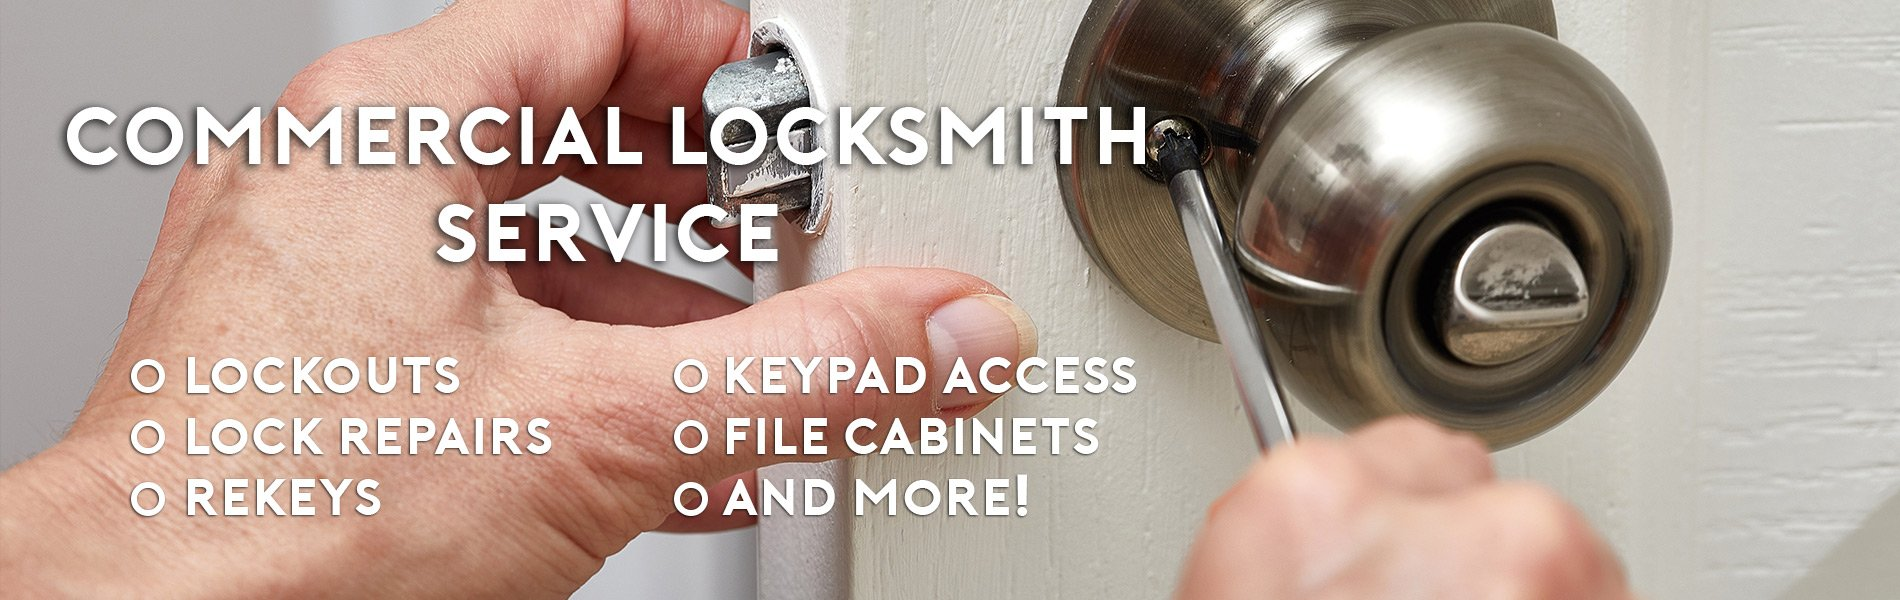 City Locksmith Shop Hampton, VA 757-653-5056